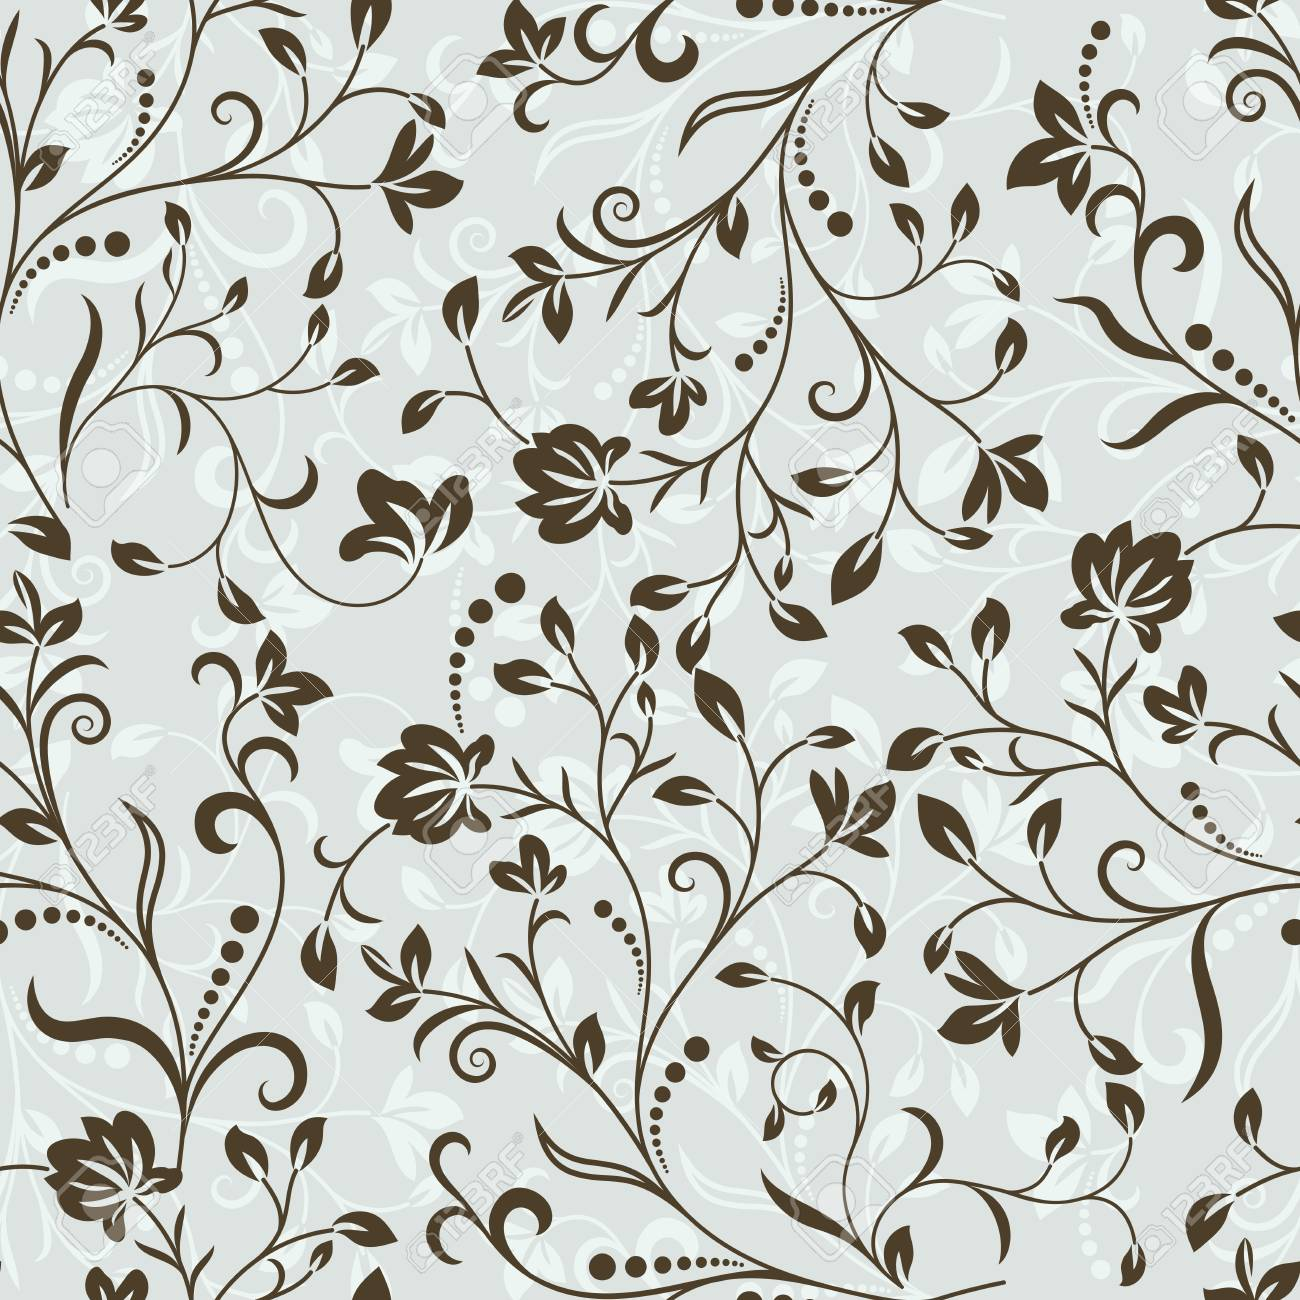 Seamless Grey And Brown Floral Vector Wallpaper Pattern Seamless Royalty Free Cliparts Vectors And Stock Illustration Image 86557960